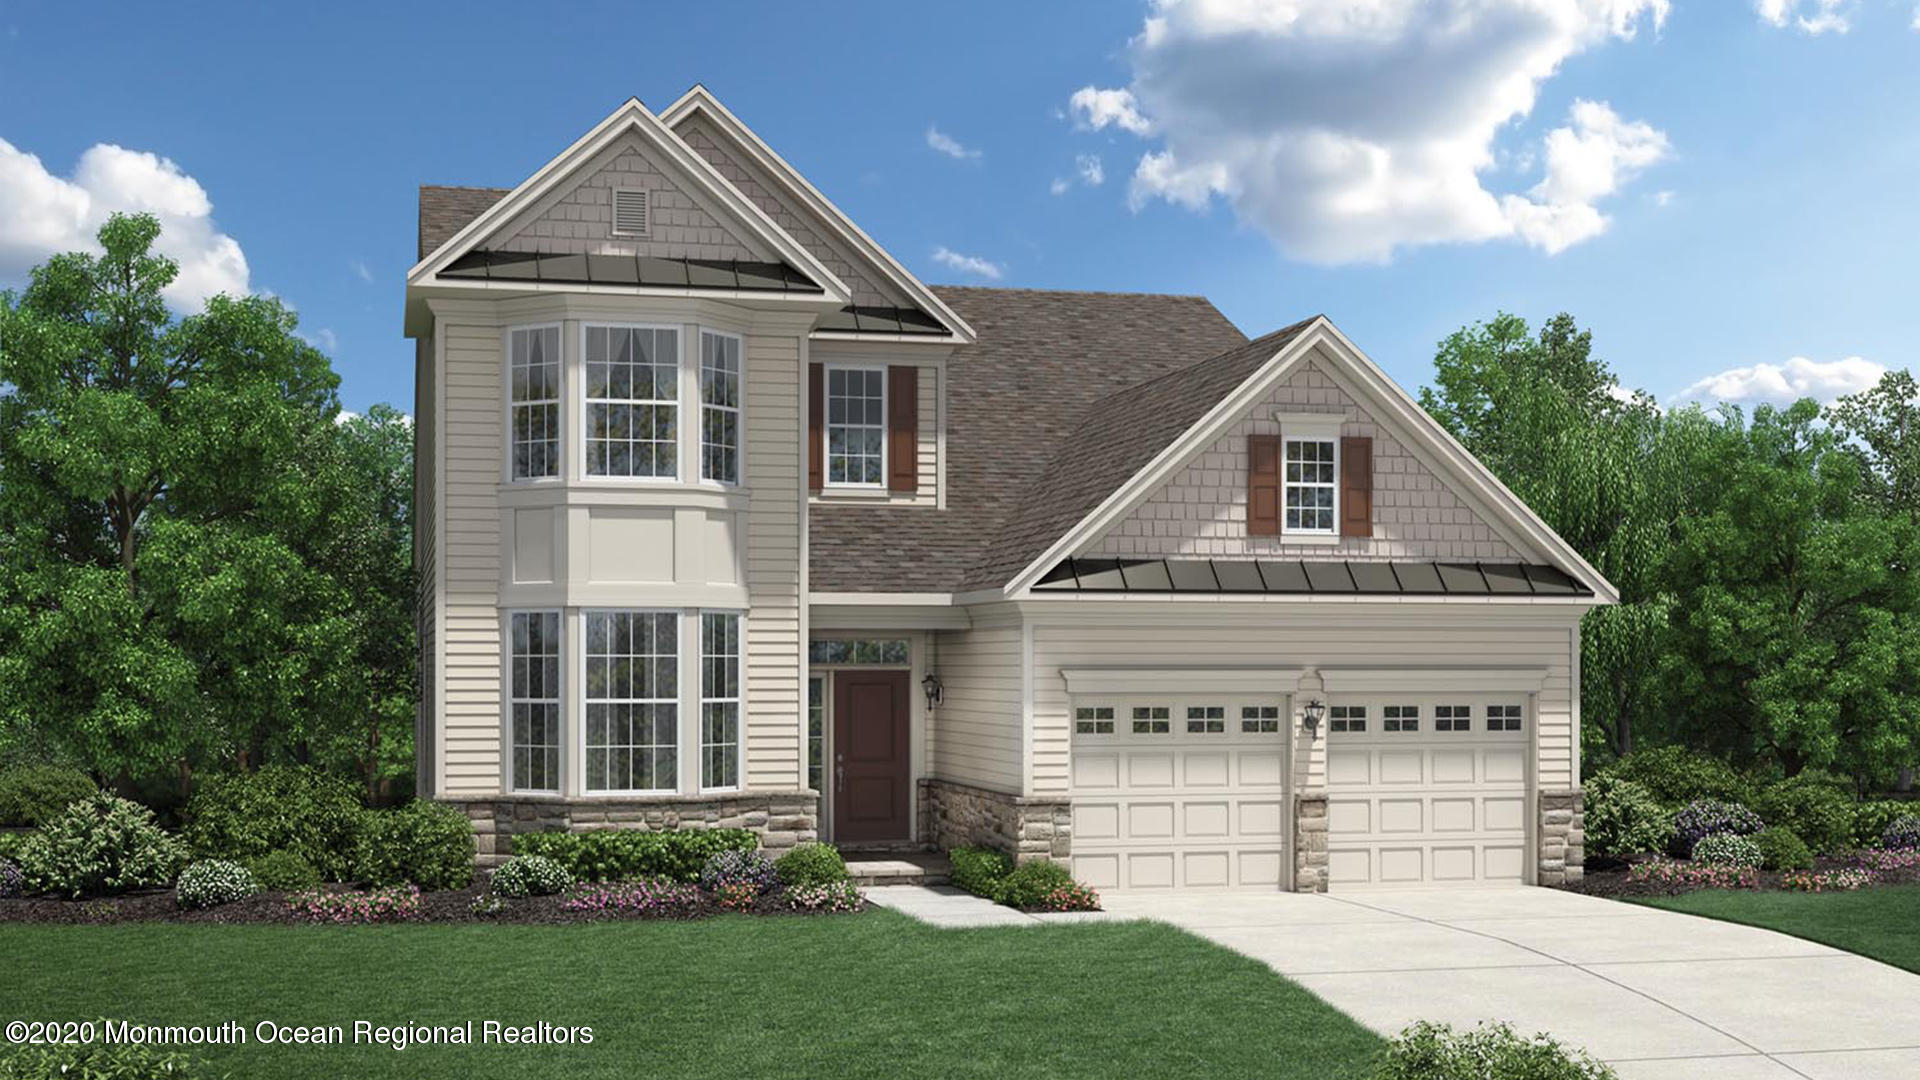 Don't miss out on the opportunity to make Sea Breeze at Lacey home! Come take a look. Only 4 homes remain. This to-be-built Quick Delivery Hammond Eastern Shore will be ready for a summer 2021 delivery. The Eastern Shore elevation features two beautiful walk-out bays in the front rooms, upstairs and down. This home has a spacious two-story expanded family room with gas fireplace, formal dining room and a magnificent master suite with tray ceiling, walk-in closet and Designer bath option. With 2 additional bedrooms & baths and a study ILO Living room this home has it all! The expanded garage has walk-in attic storage above.